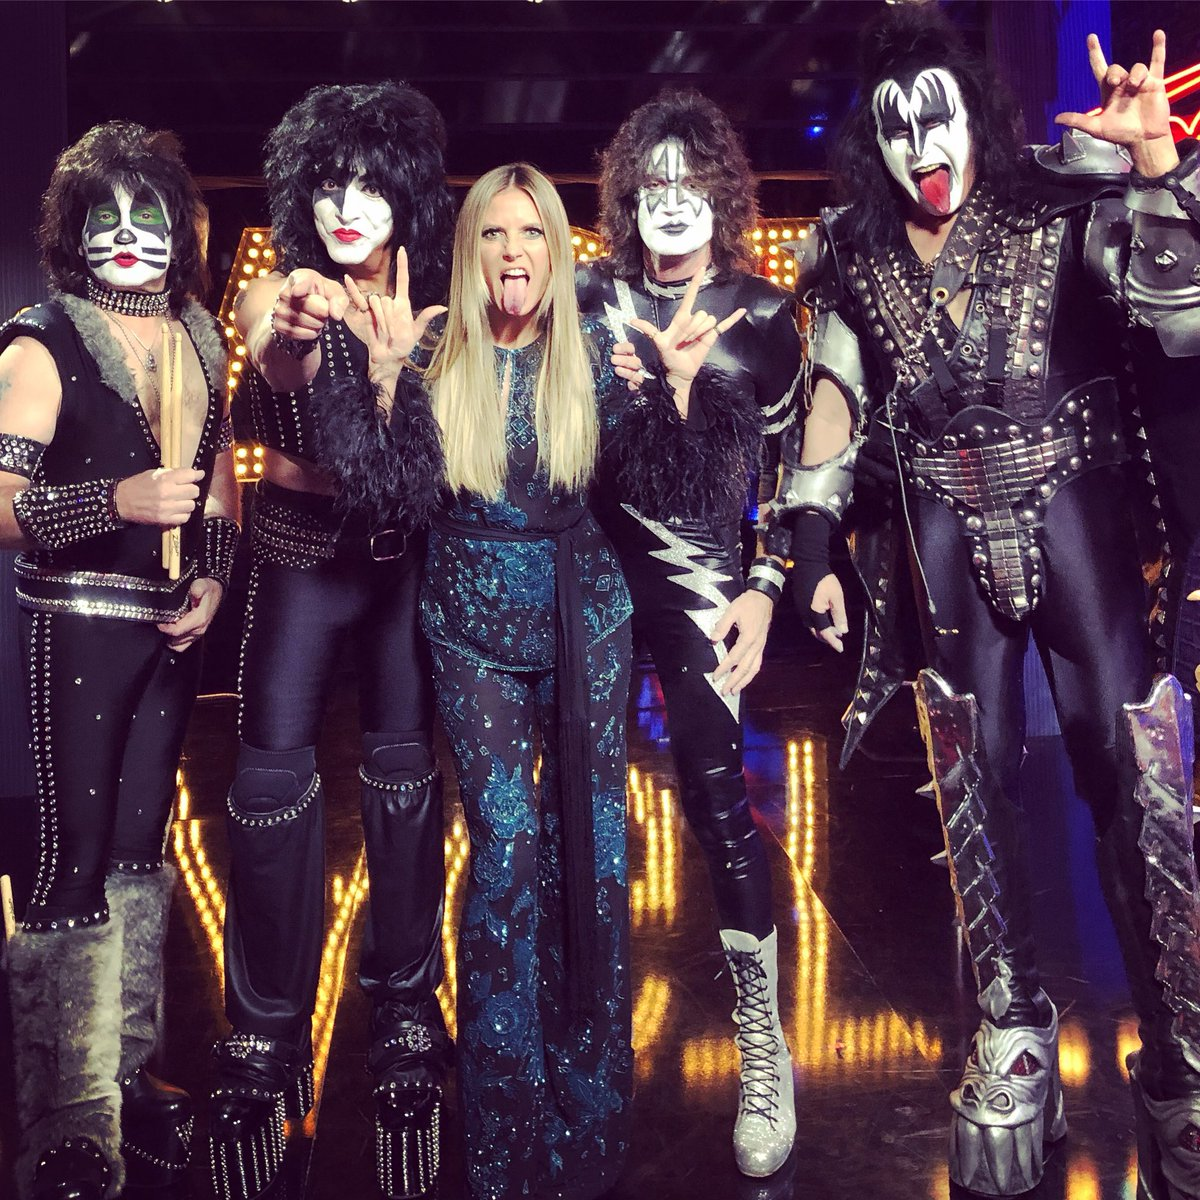 So excited for @kissonline to be on the #AGTFinale tonight ???? @AGT https://t.co/z8KxJMQI0h